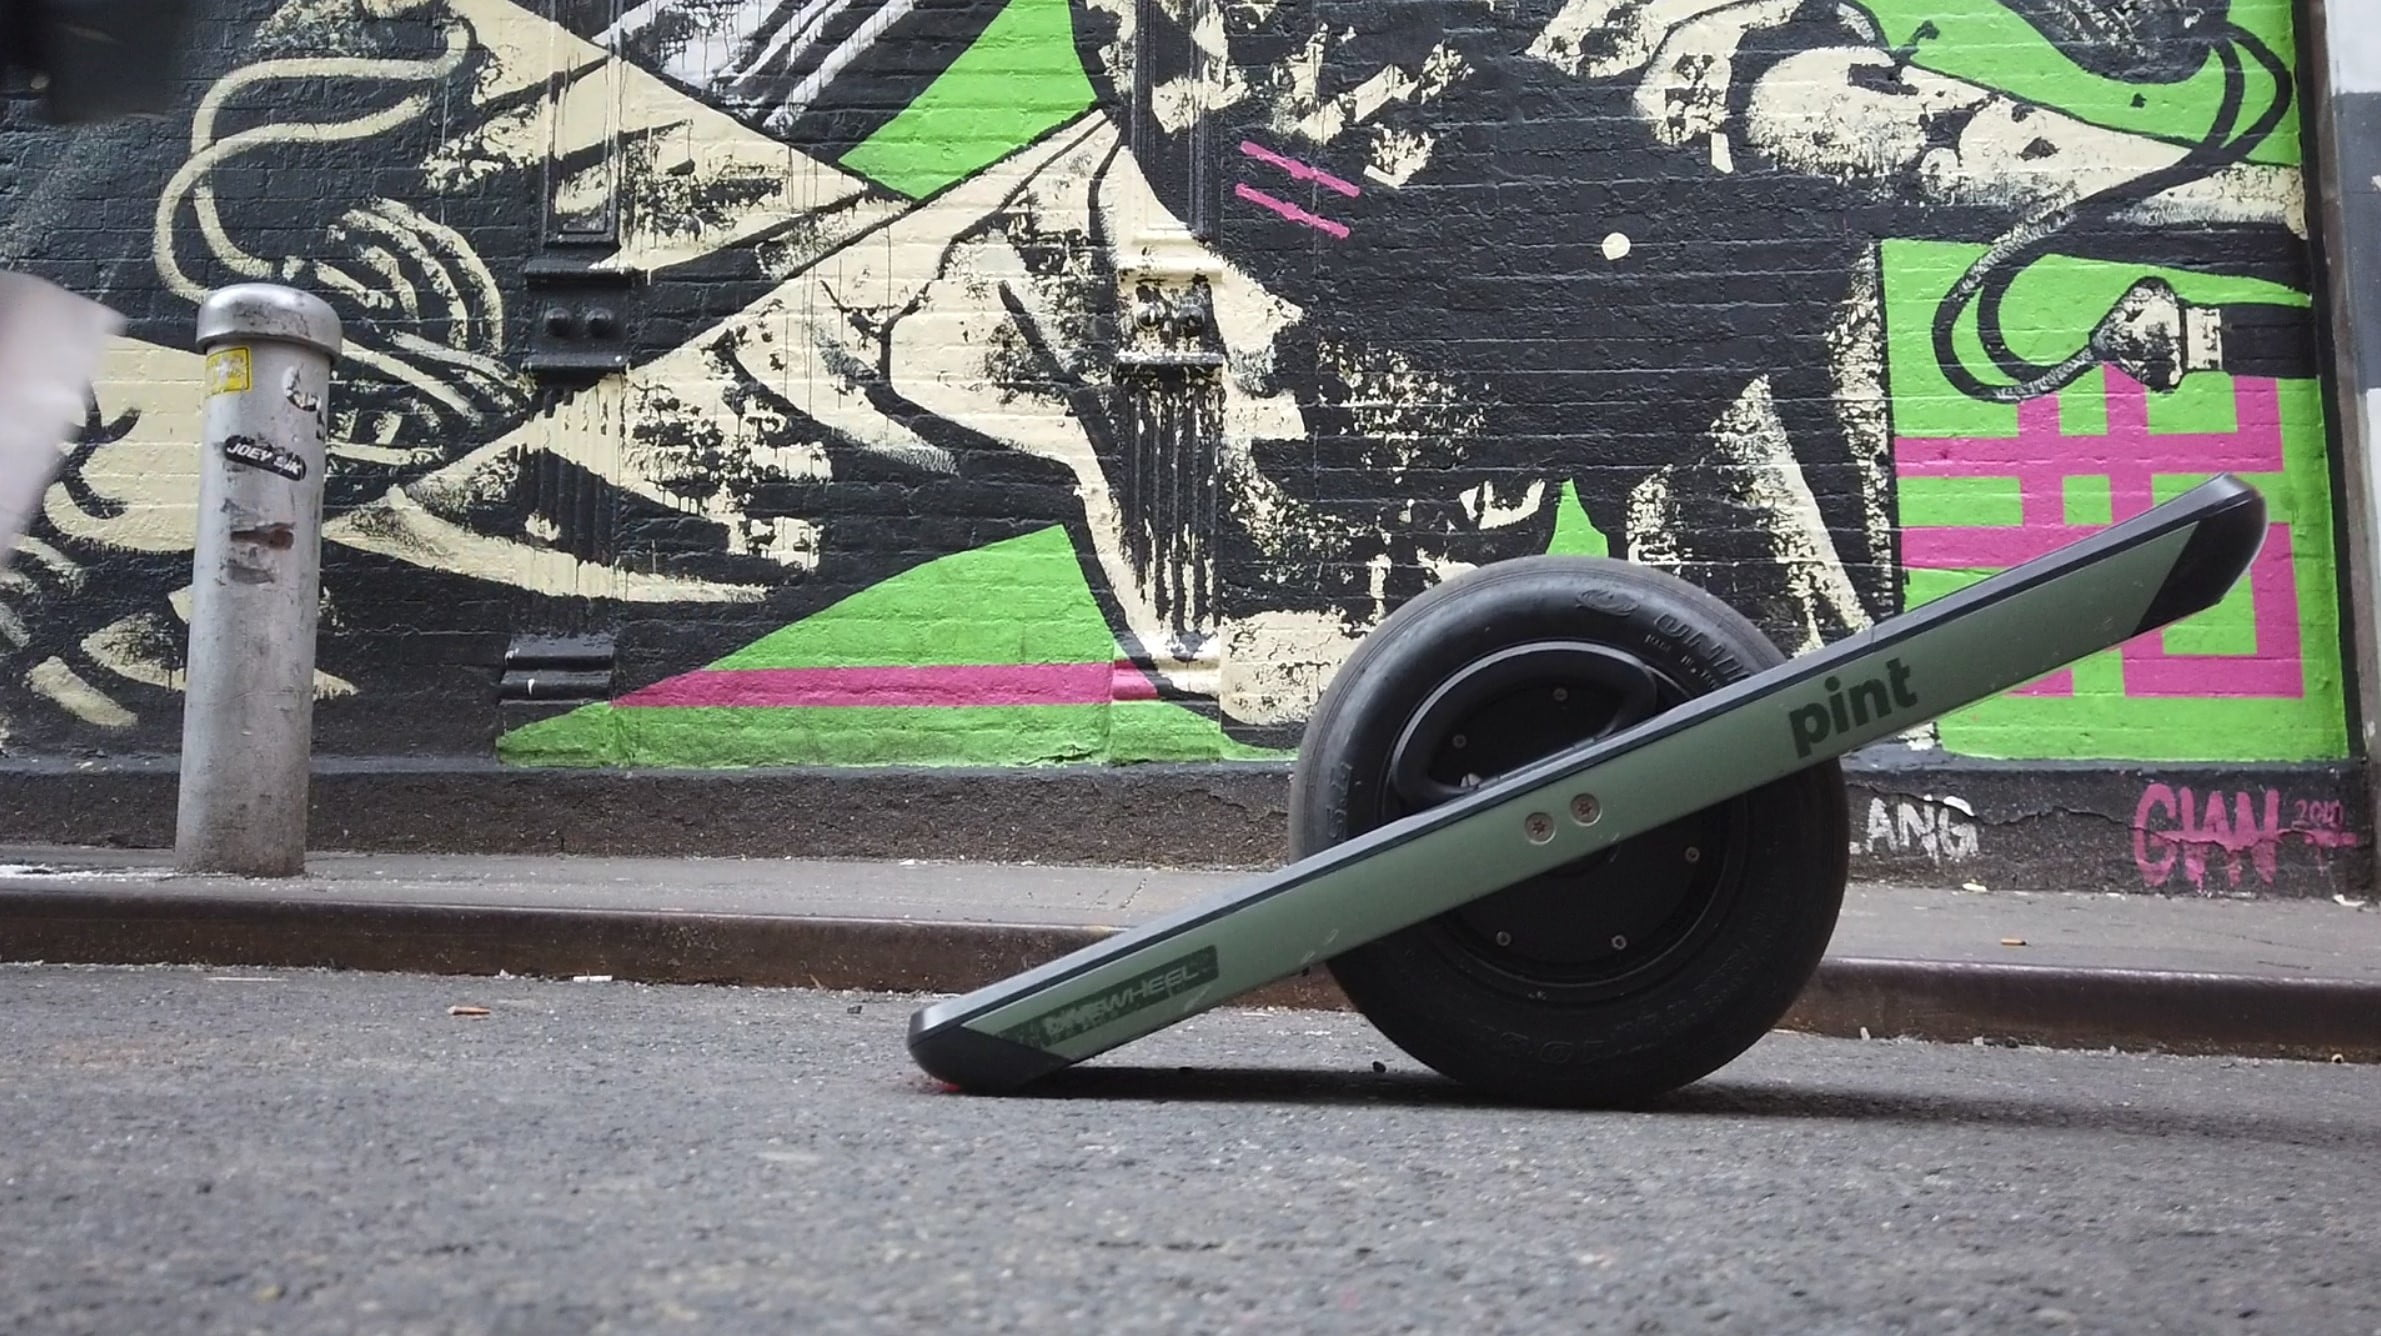 There's a New Onewheel on the Block, and it's a Pint-sized